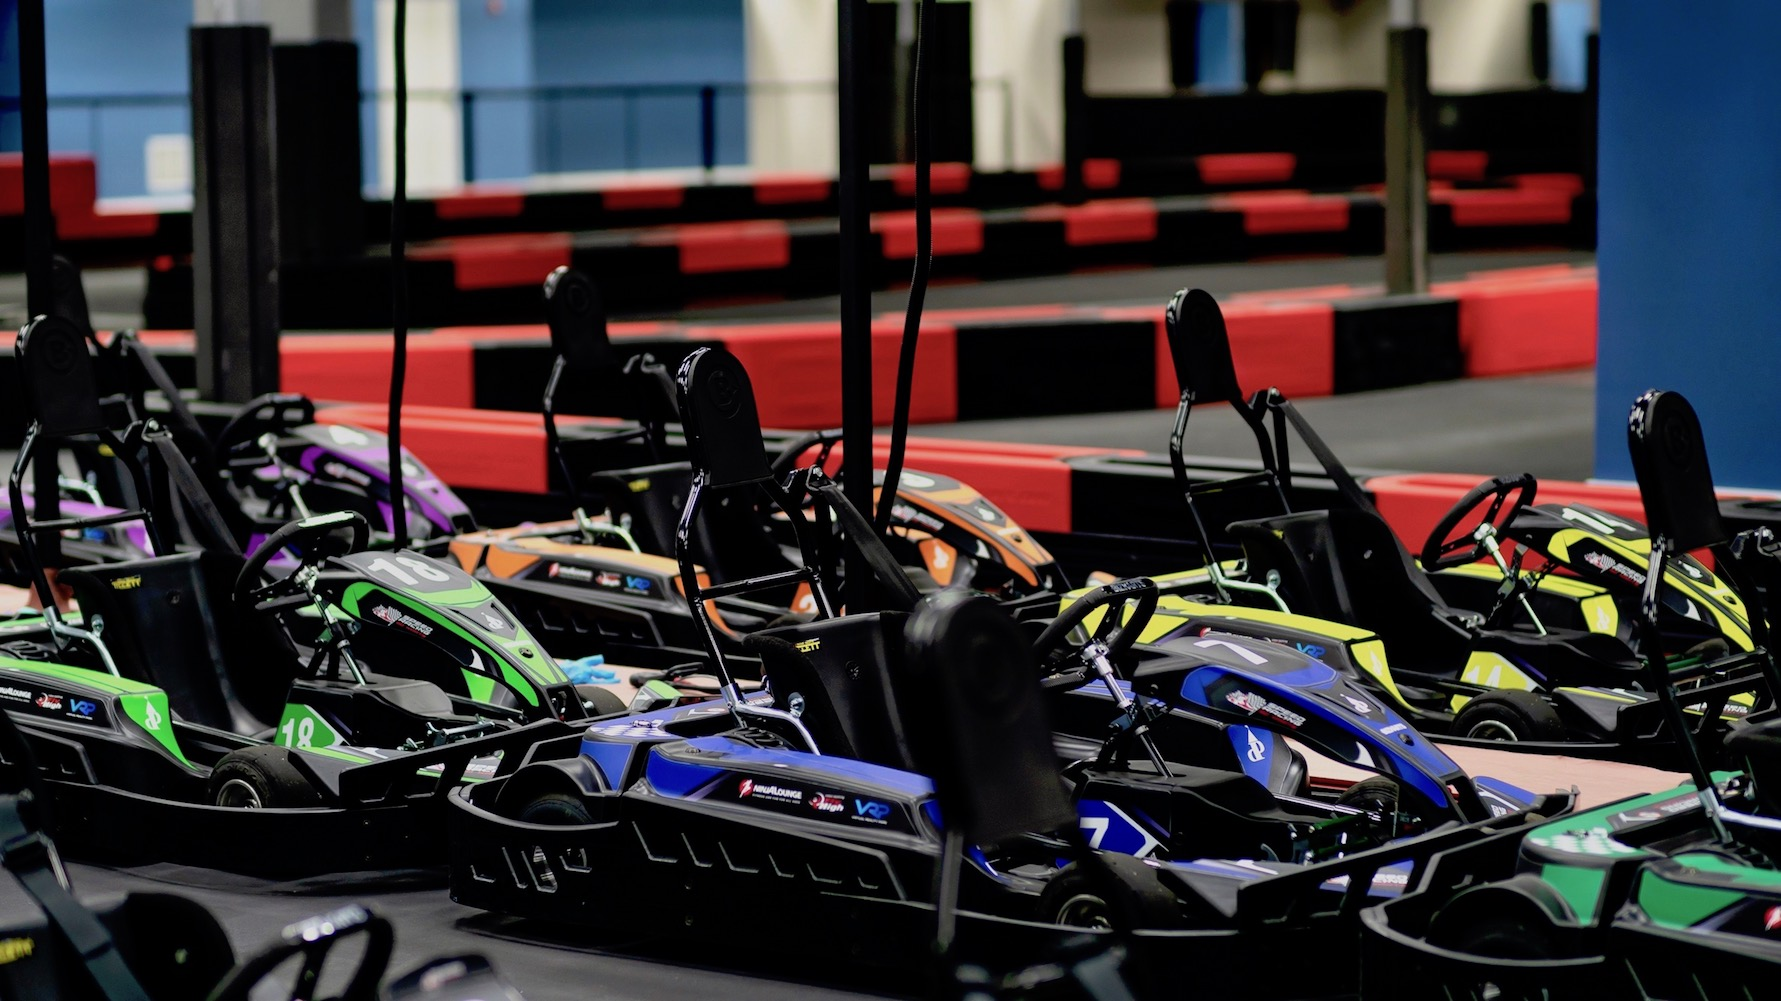 Karting Miami Will Feature Fully Immersive Indoor High-Speed Racing